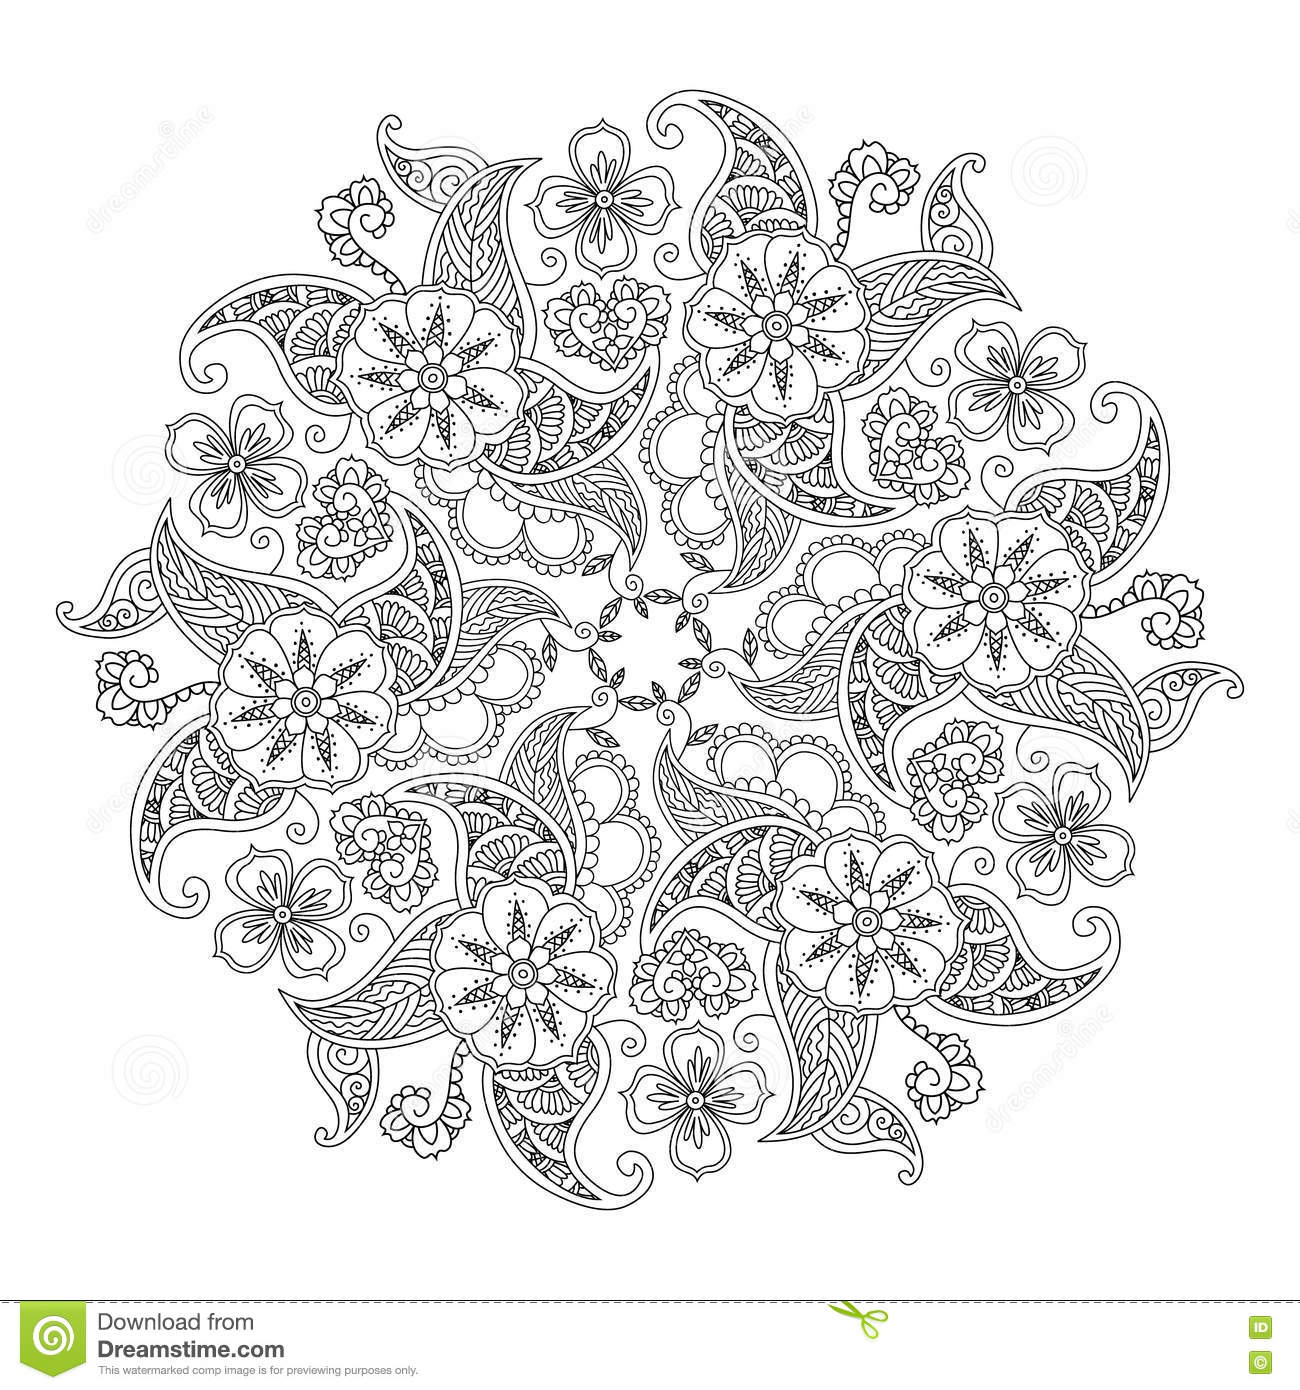 Mandala With Flowers And Leaves Isolated On White